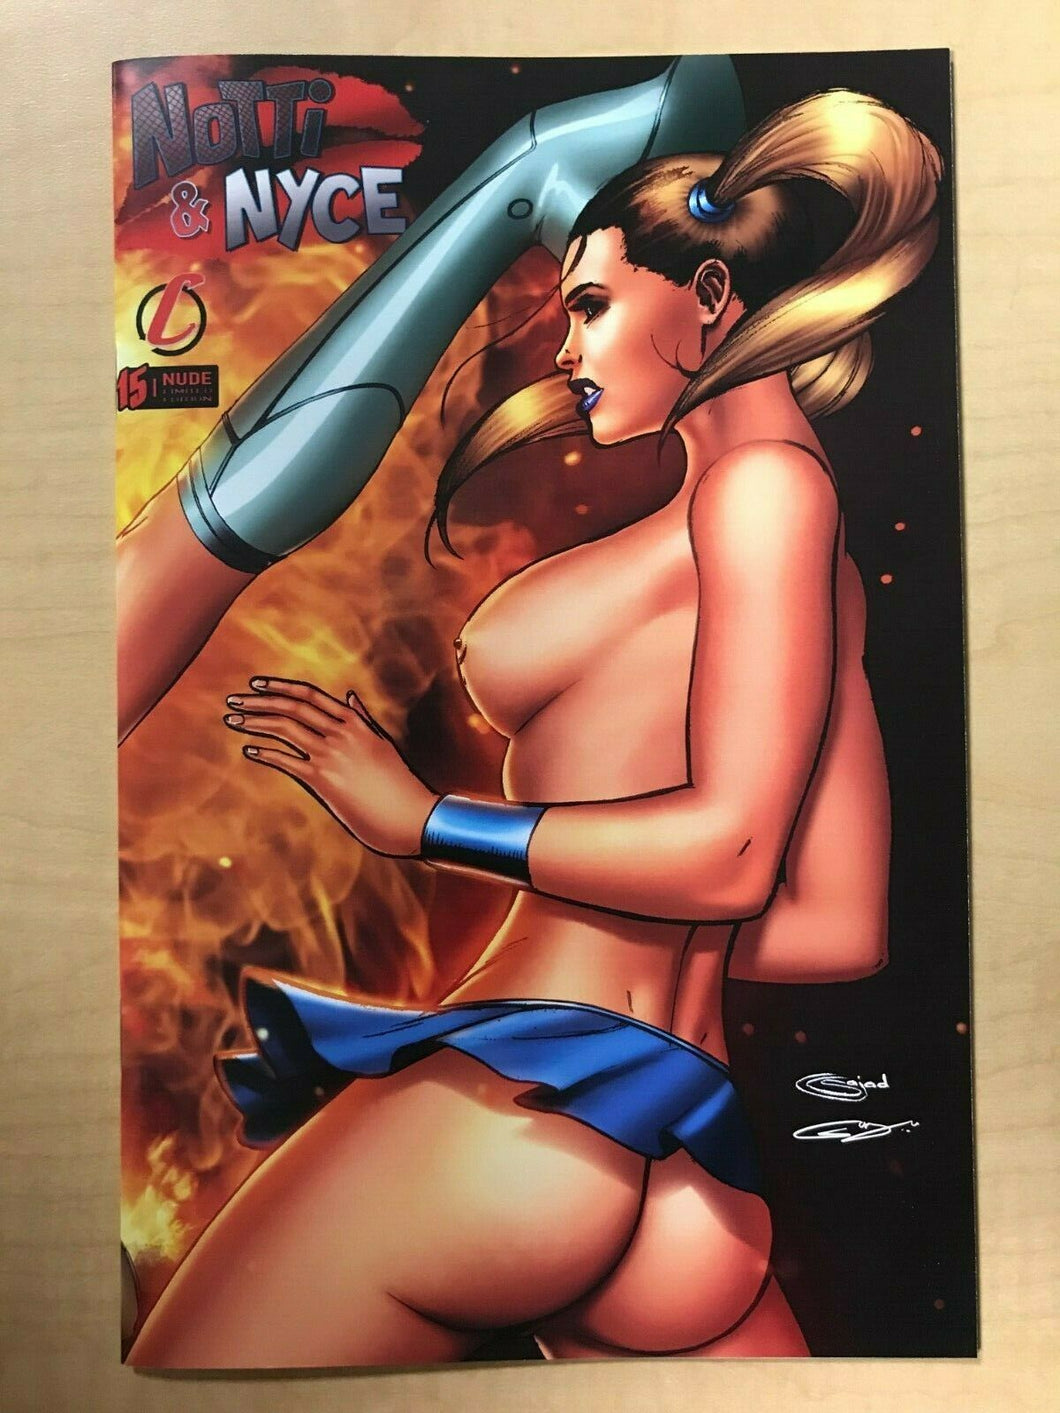 Notti & Nyce #15 C NAUGHTY TOPLESS Variant Cover by Sajad Shah Counterpoint